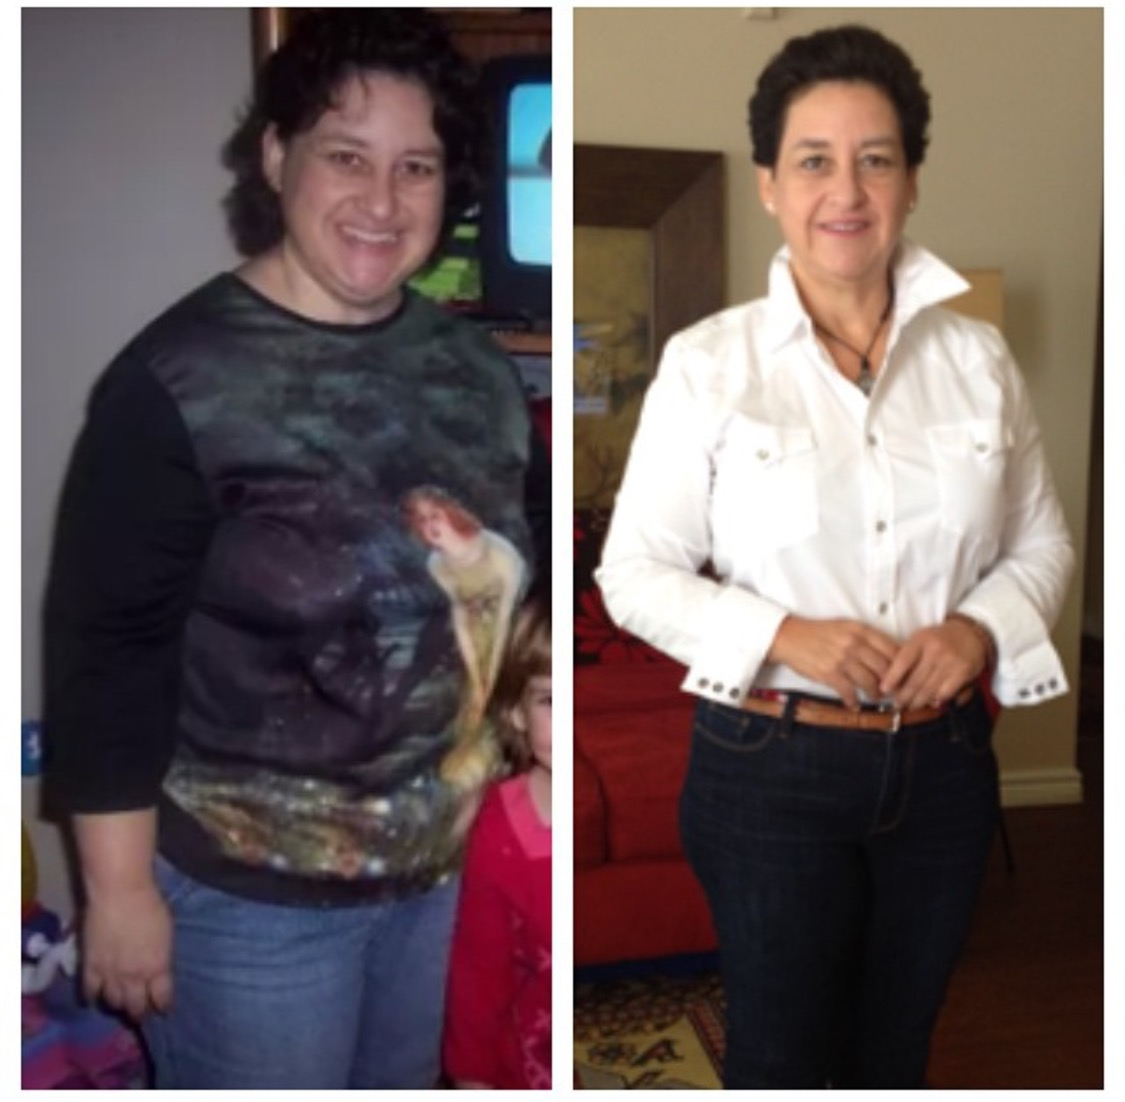 - I have been doing training with Myra for over a year. My transformation has been at a steady pace. Being a business woman, Myras training is amazing because despite the fact that i am very busy, i still manage to get my workouts done and keep a well balanced nutrition. Slow and steady progress has been my success. I highly recommend Myras training.